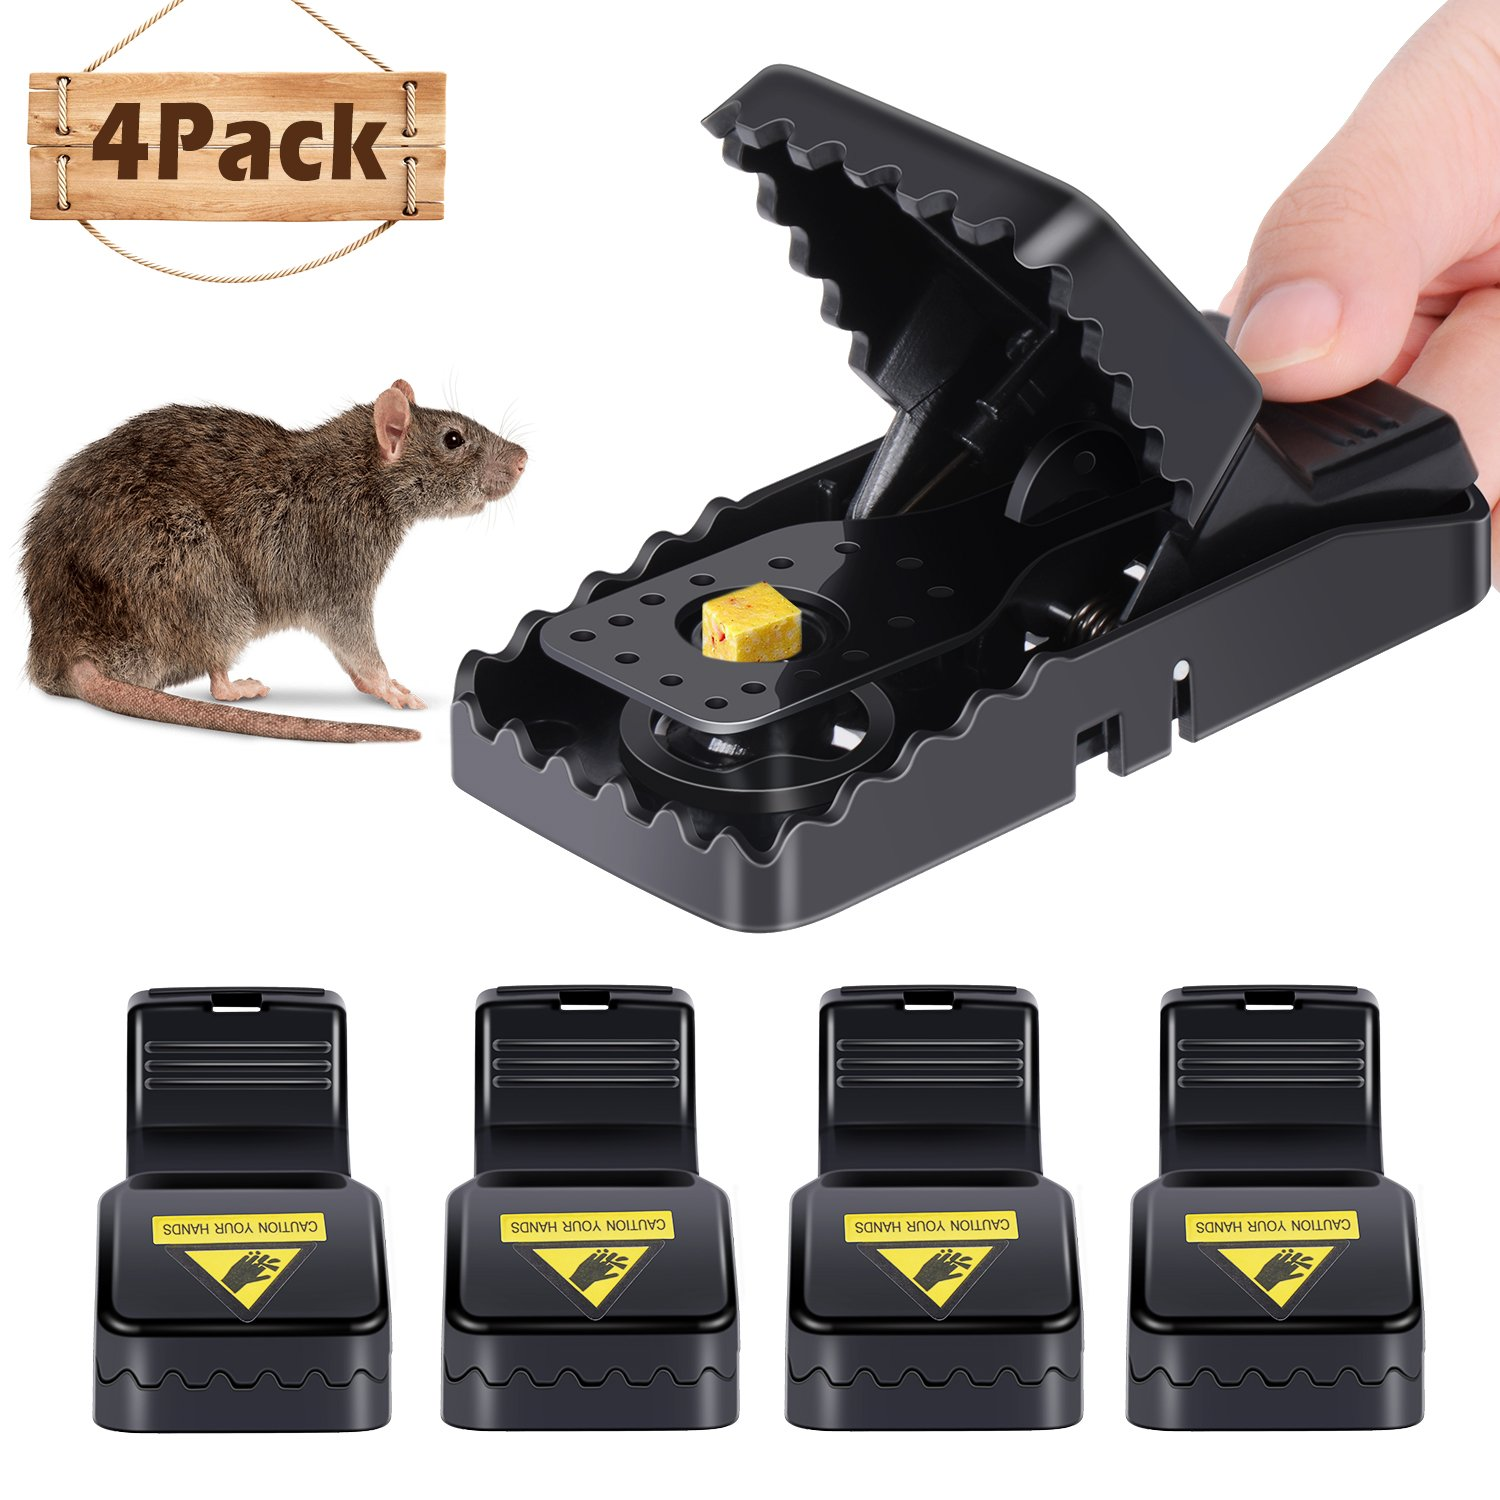 Adoric 4-Pack Mouse/Rats Trap That Work Humane Power Rodent Killer 100% Mouse Catcher Safe for Families and Pet by Adoric (Image #1)